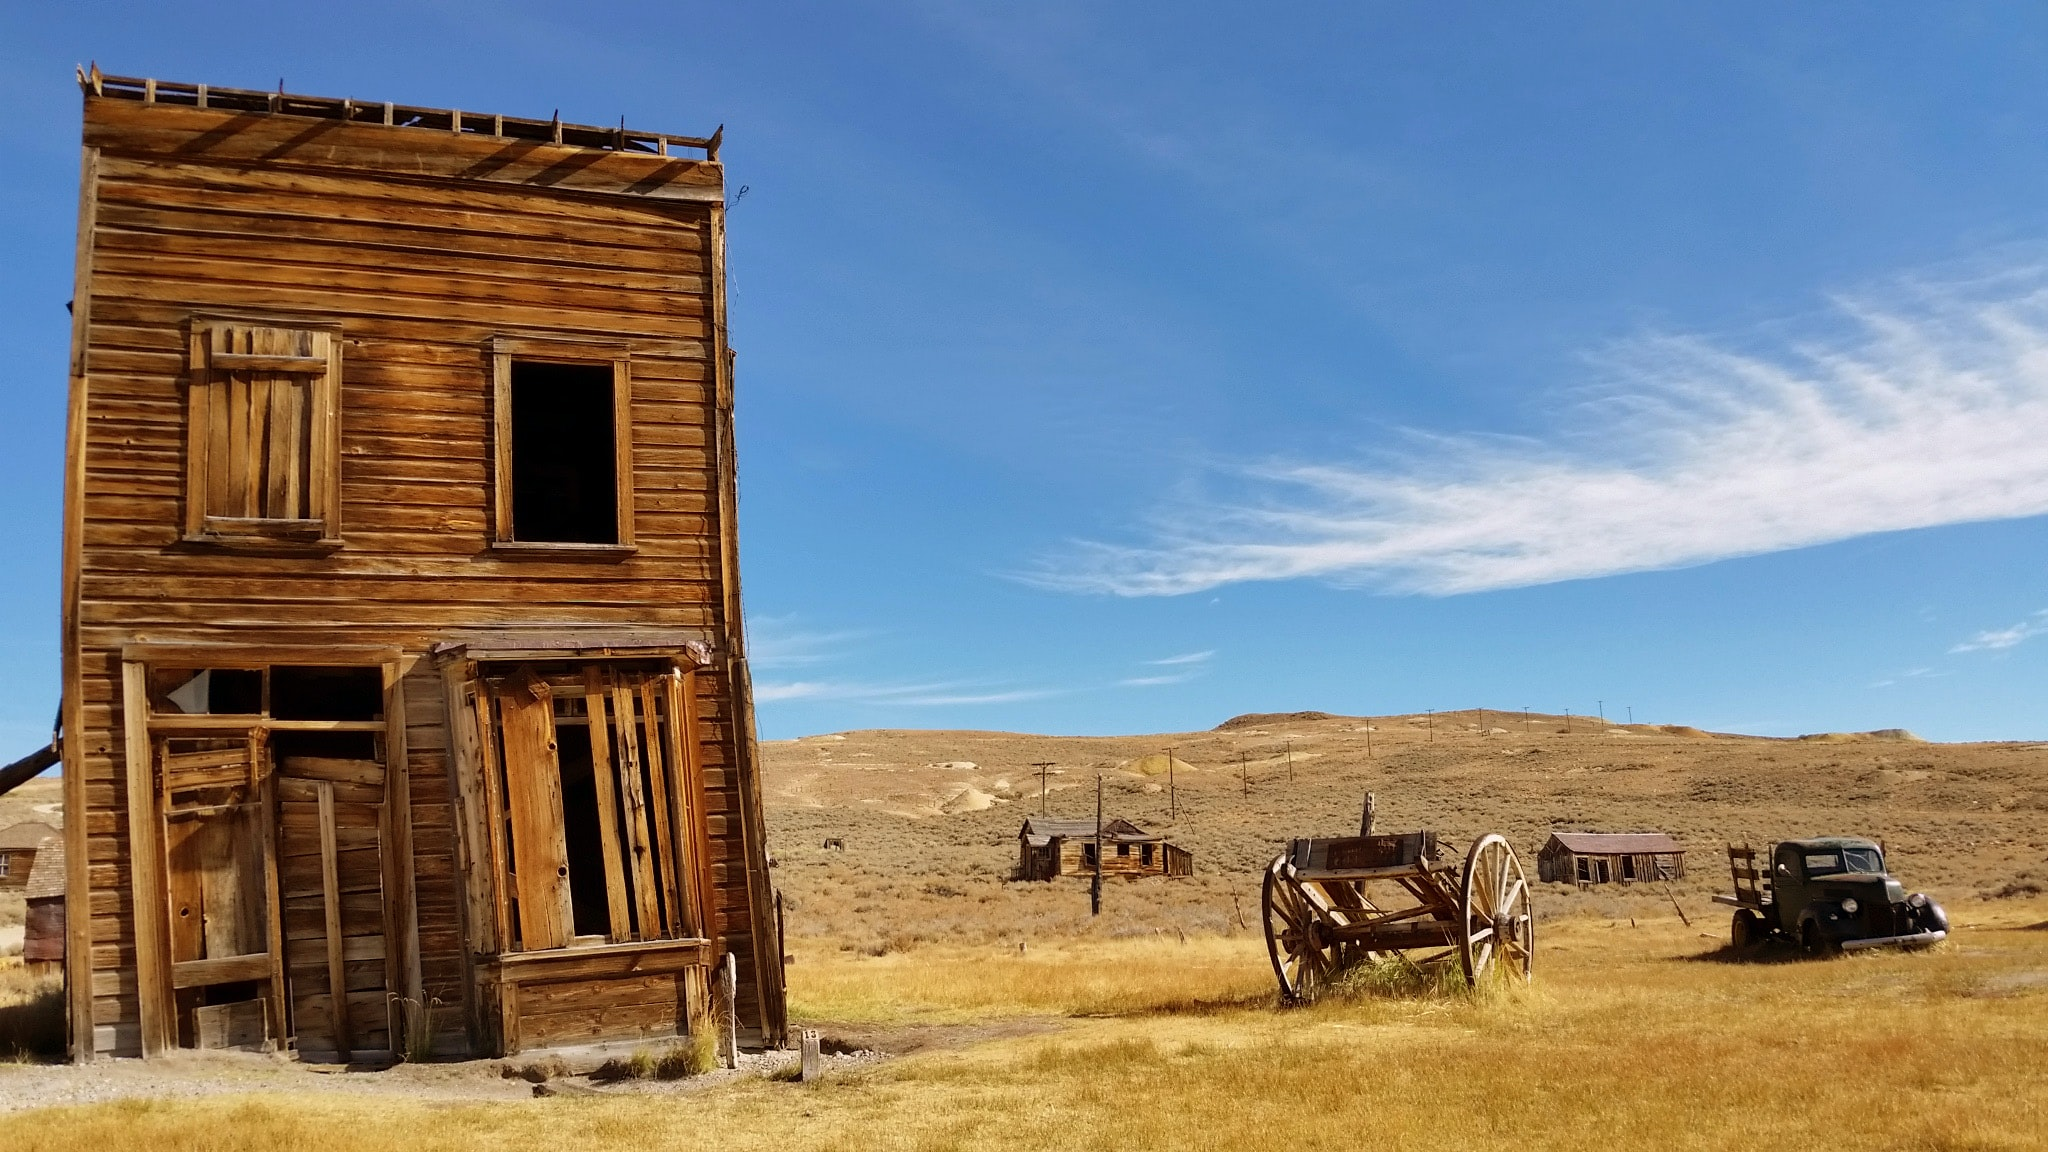 Deserted wild west shack